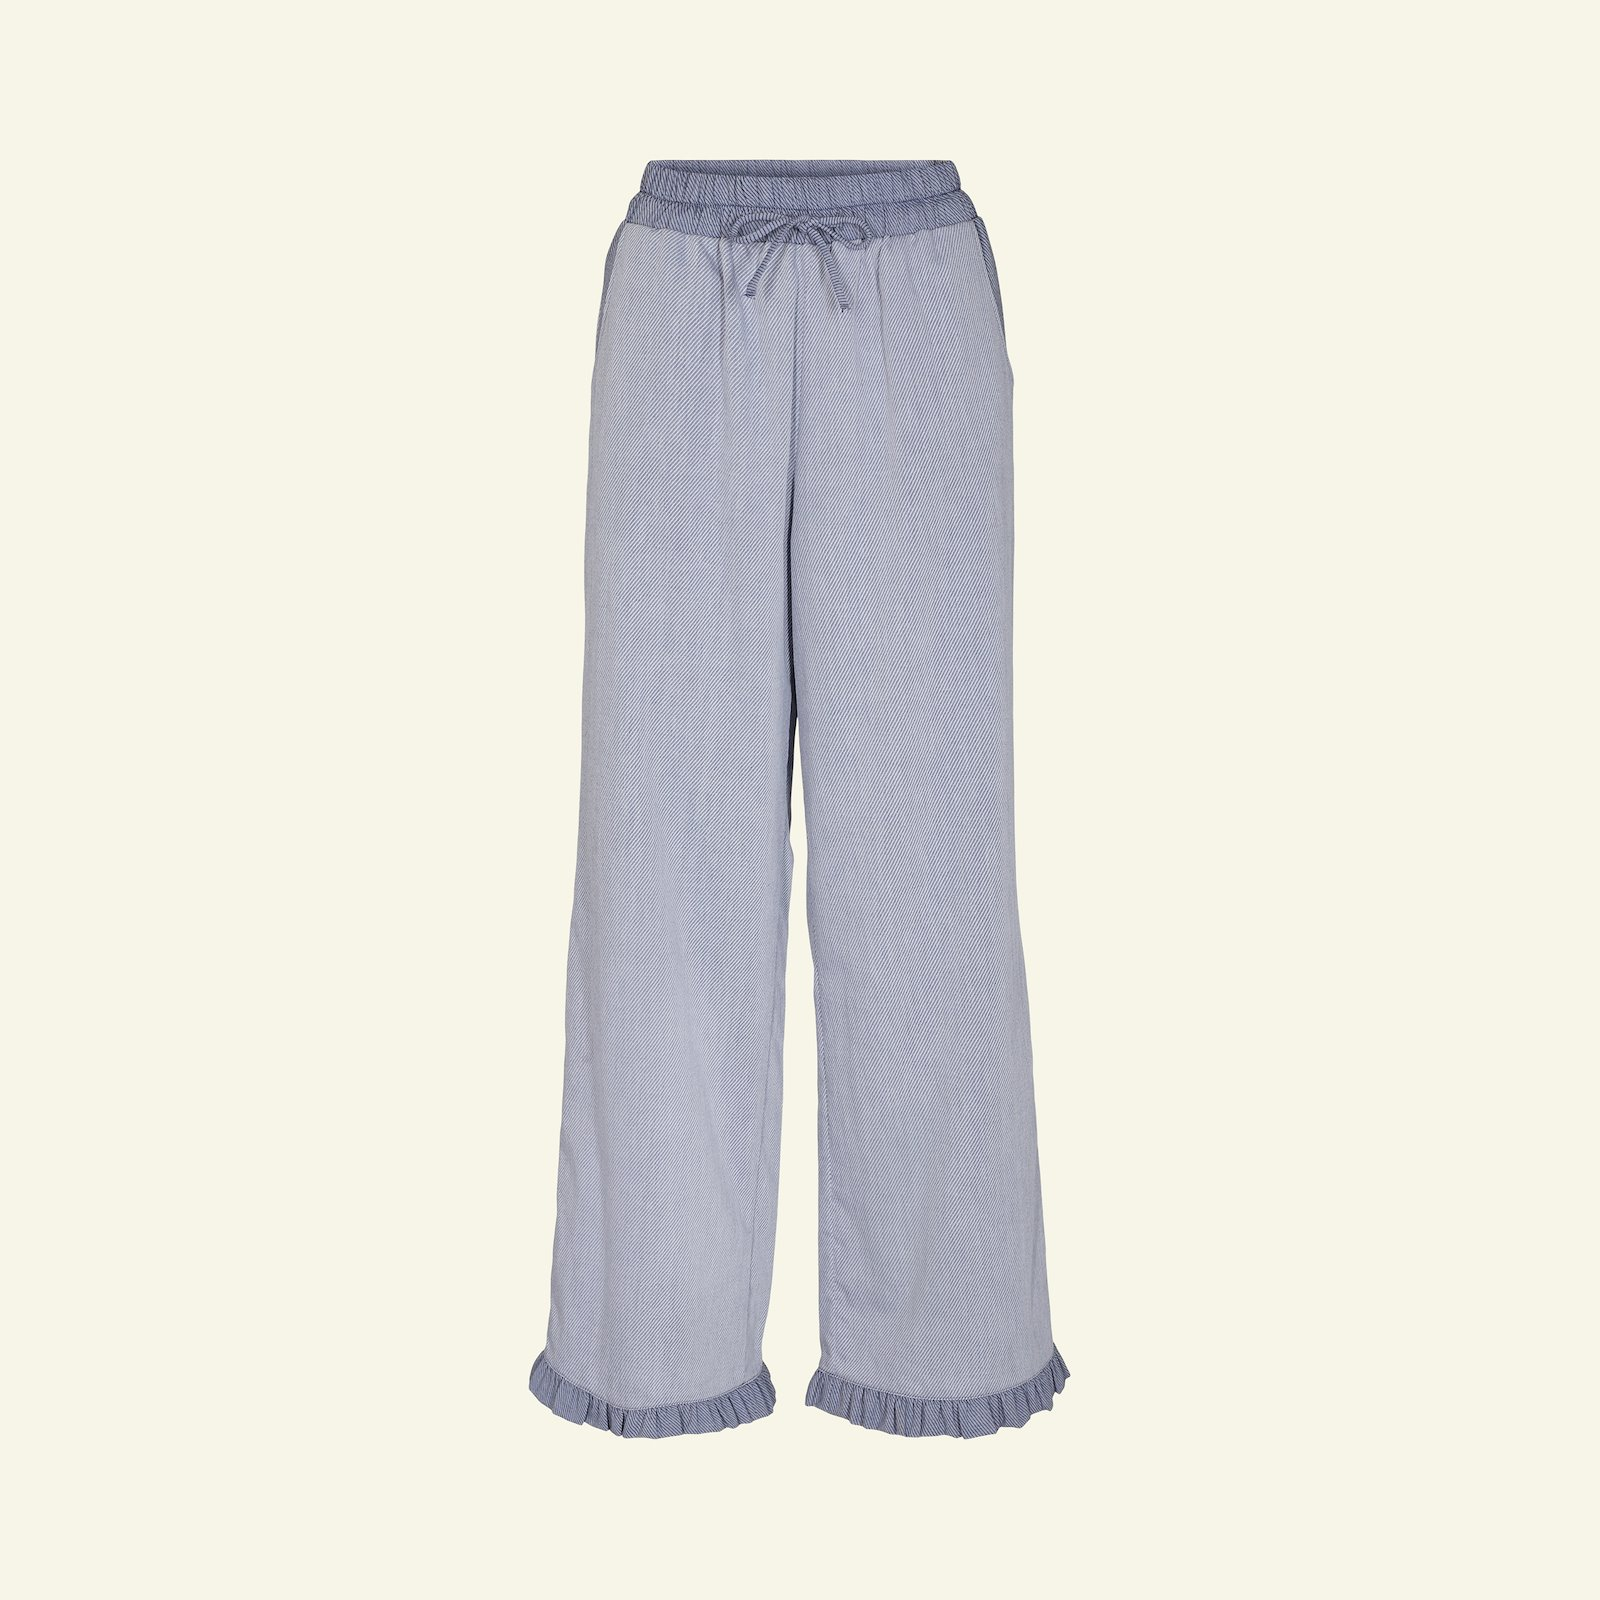 Wide trousers/shorts w. pockets, 42/14 p20051_501860_sskit